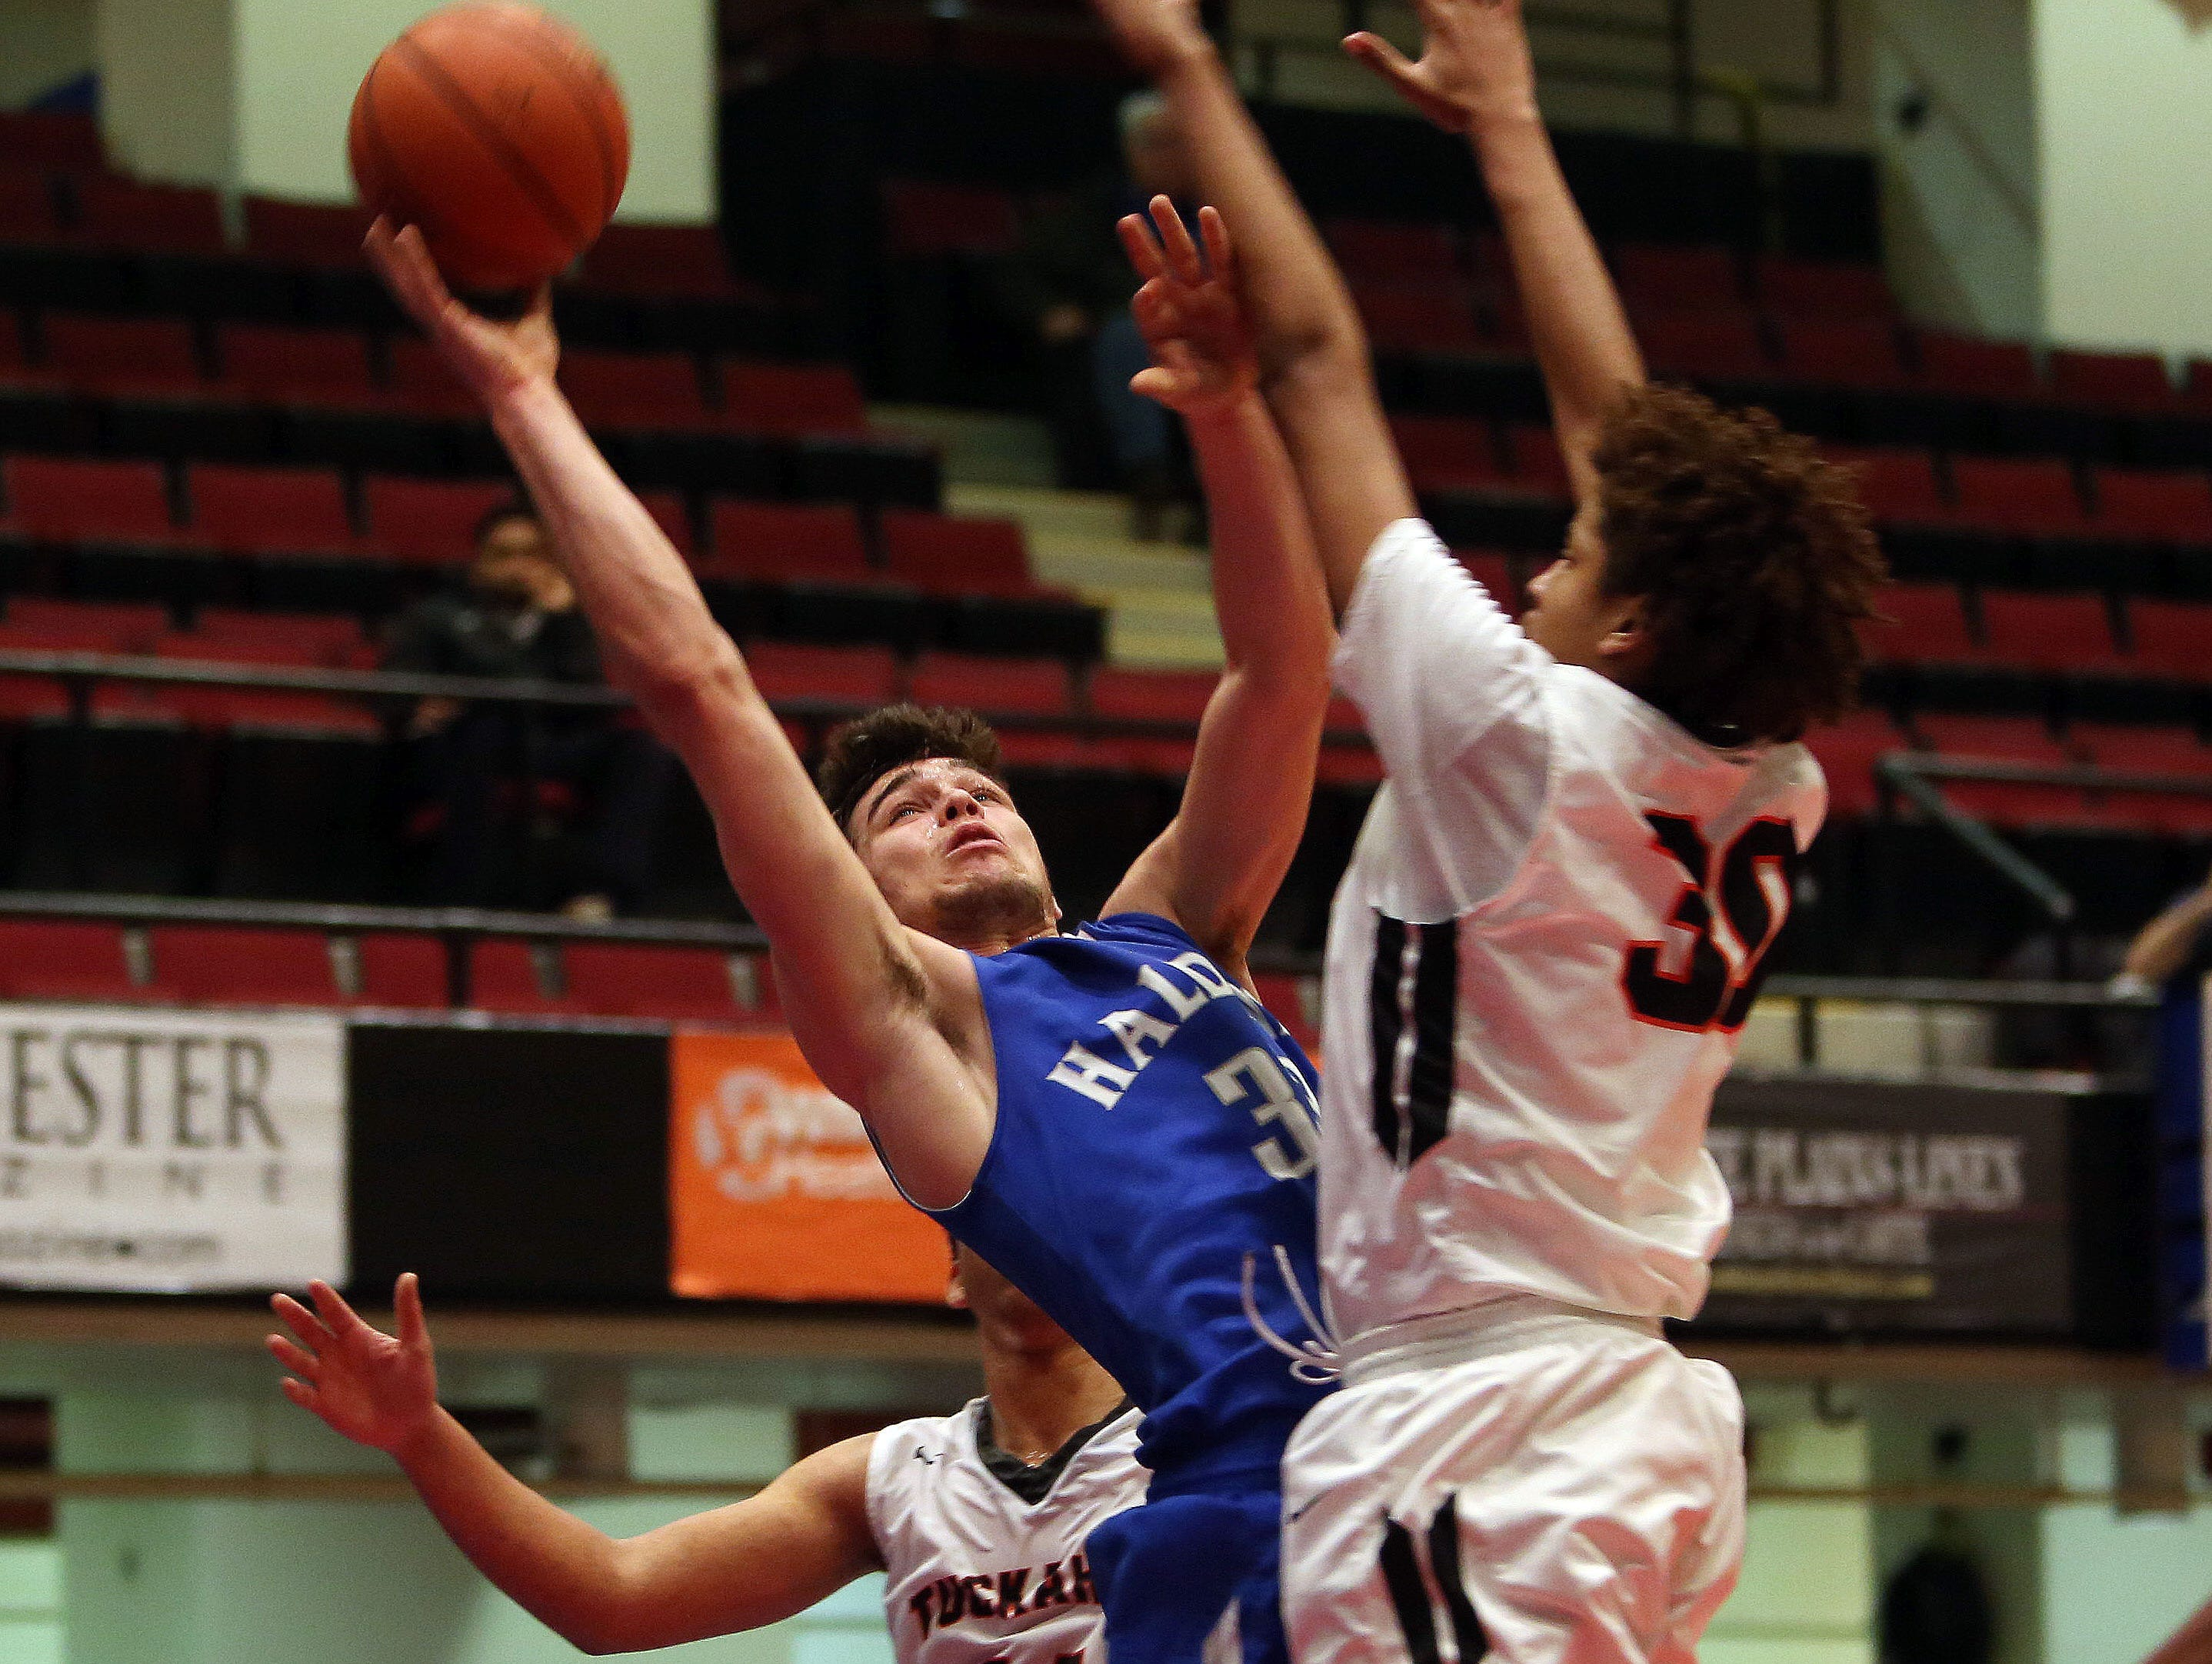 Haldane's Will Zuvic (33) goes up for a shot in front of Tuckahoe's Bryan Murray (30) during first half action in the boys Class C semifinal at the Westchester County Center in White Plains Feb. 24, 2016. Haldane won the game 44-34.